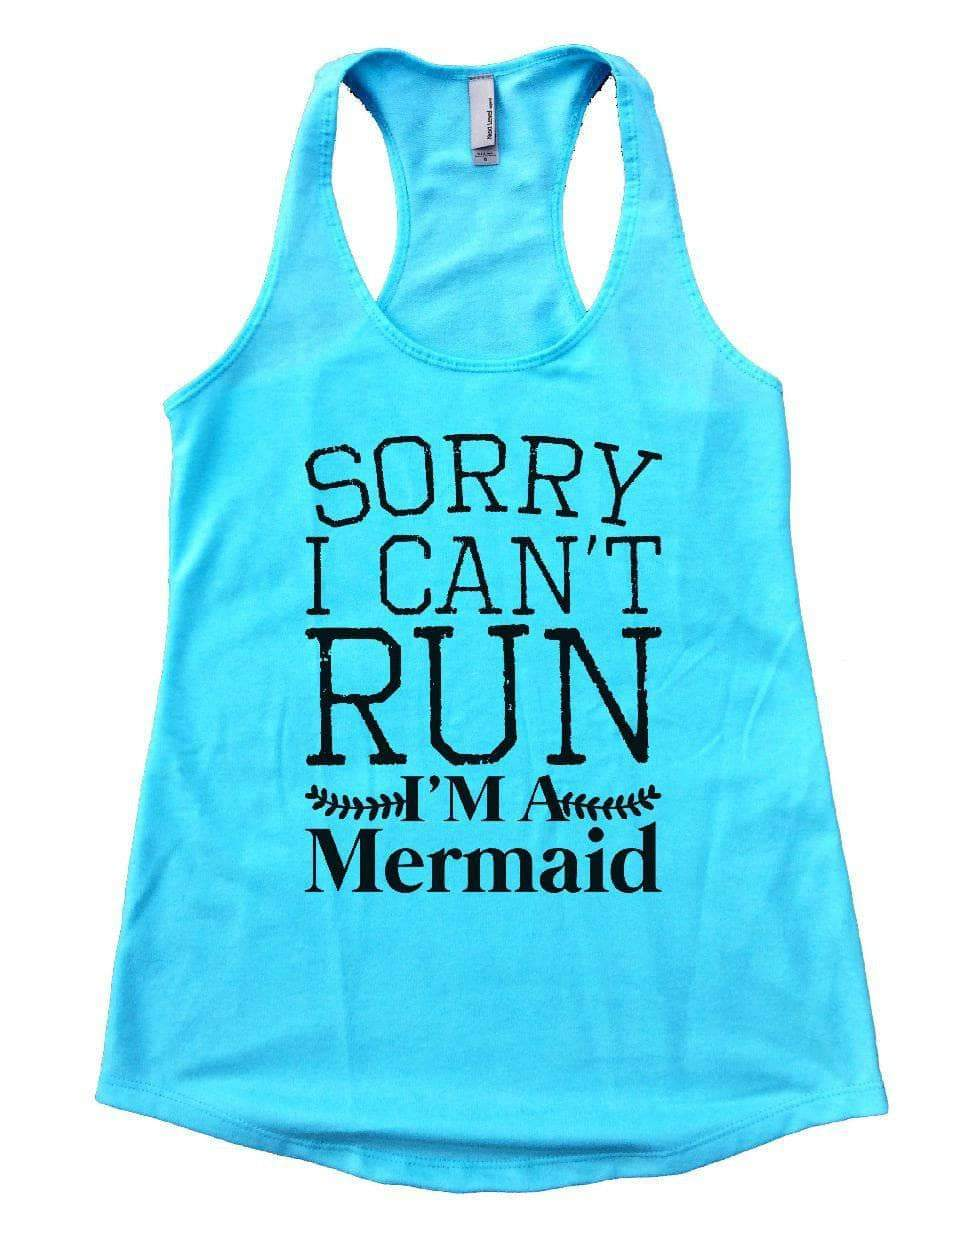 SORRY I CAN'T RUN I'M A Mermaid Womens Workout Tank Top Small Womens Tank Tops Cancun Blue